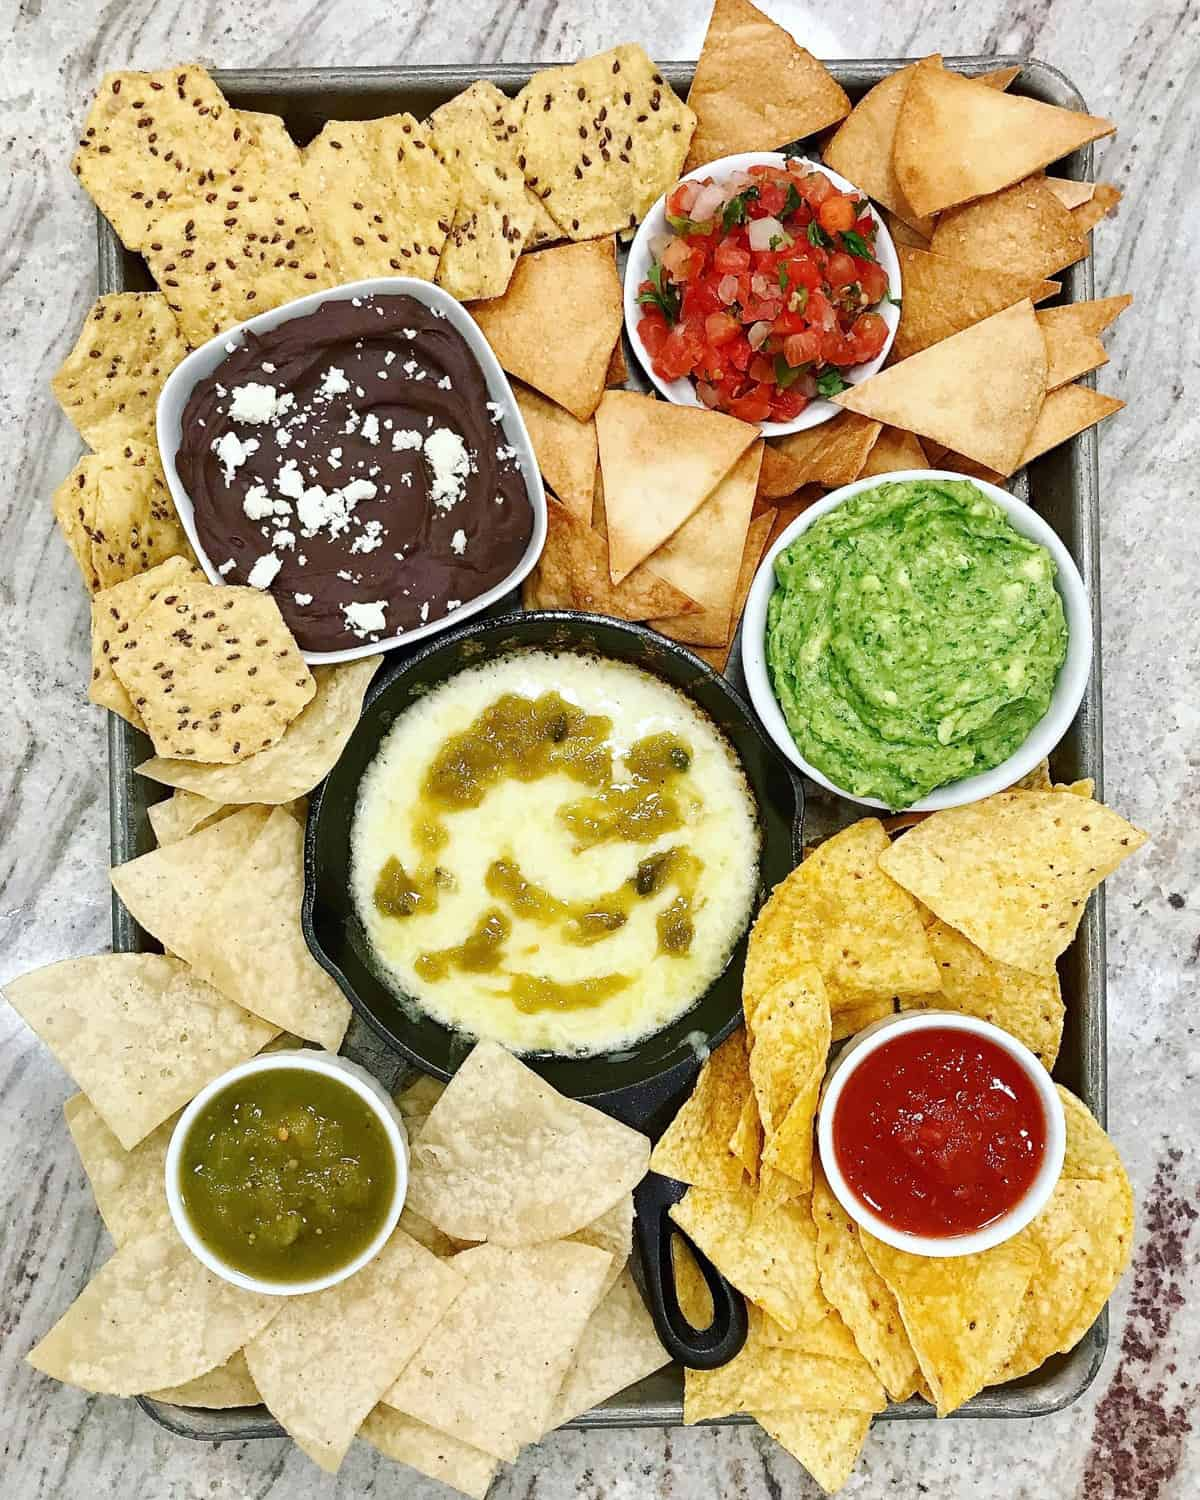 Chips and Dips Tray by The BakerMama